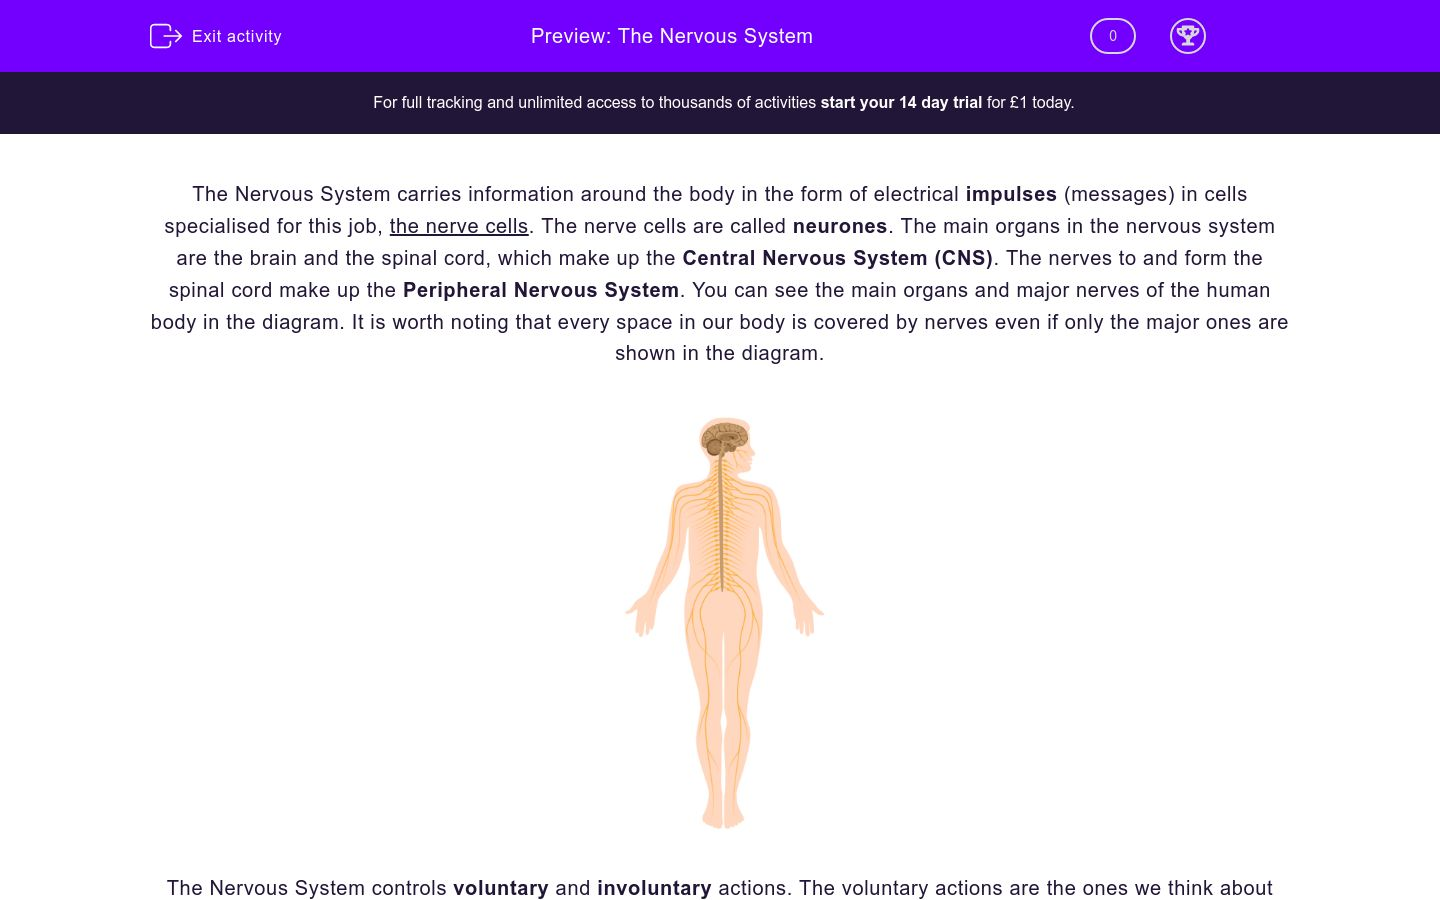 'Understand The Nervous System' worksheet